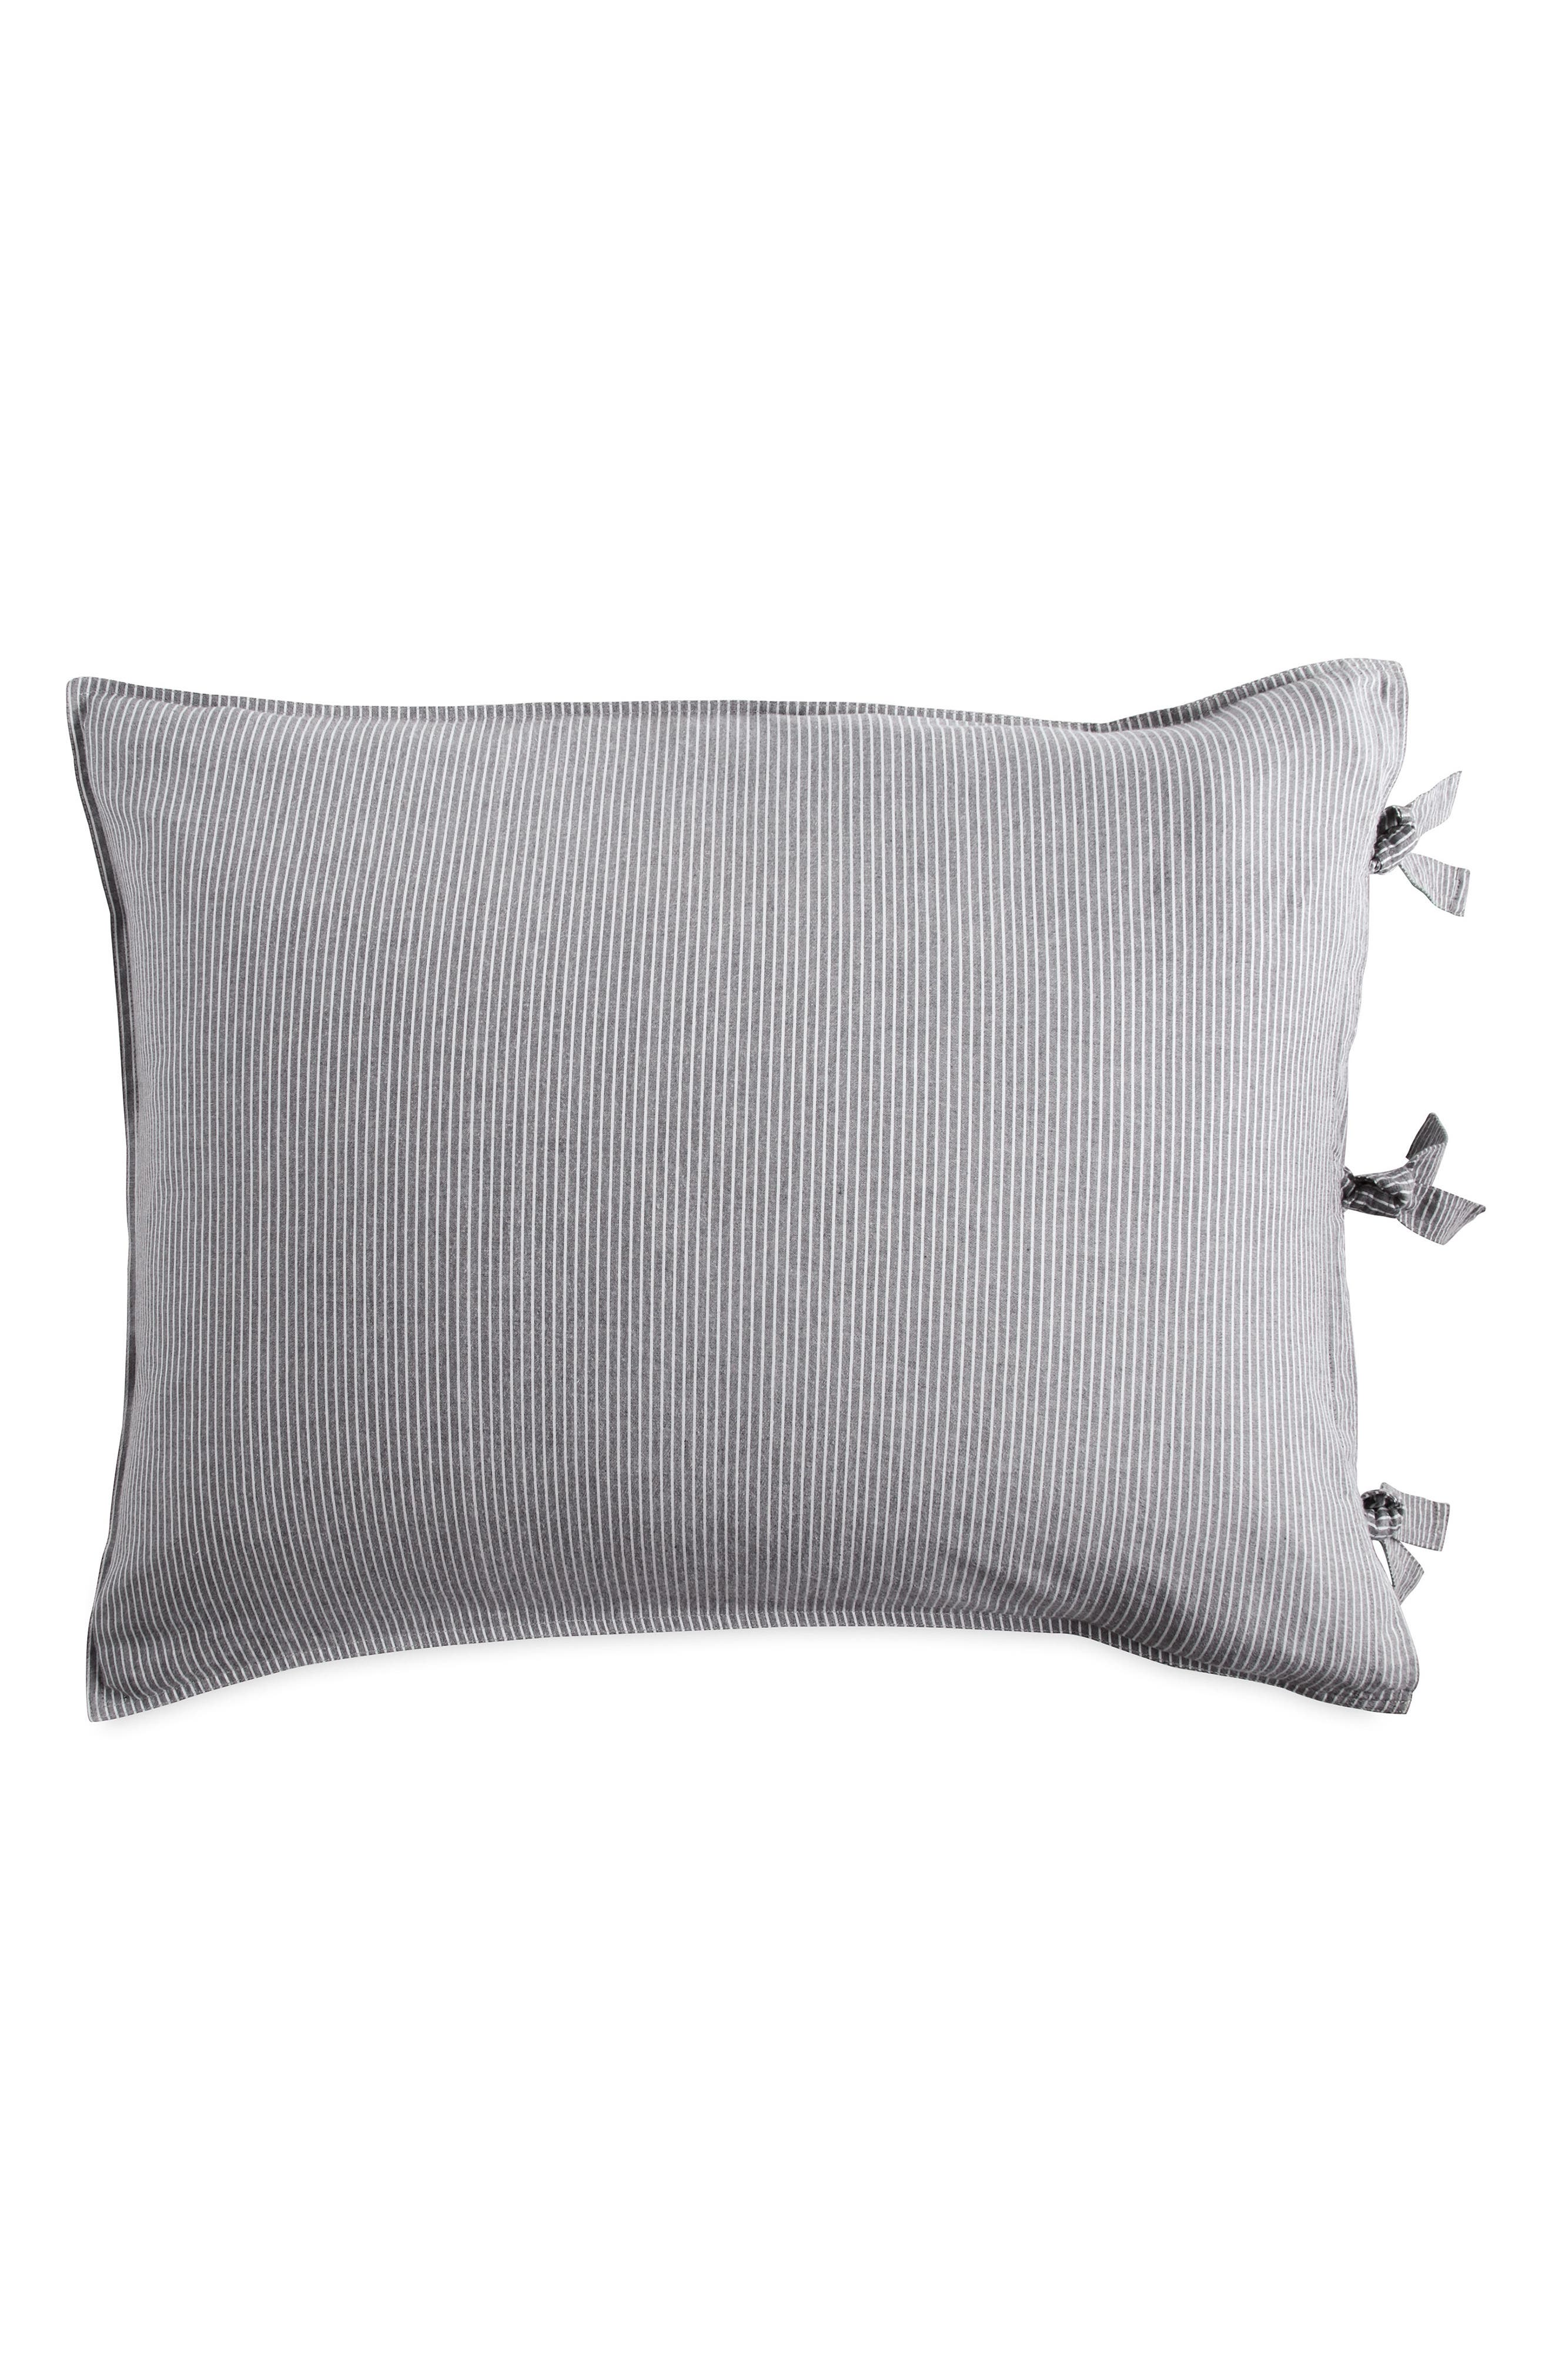 PURE Stripe Pillow Sham,                             Main thumbnail 1, color,                             GREY